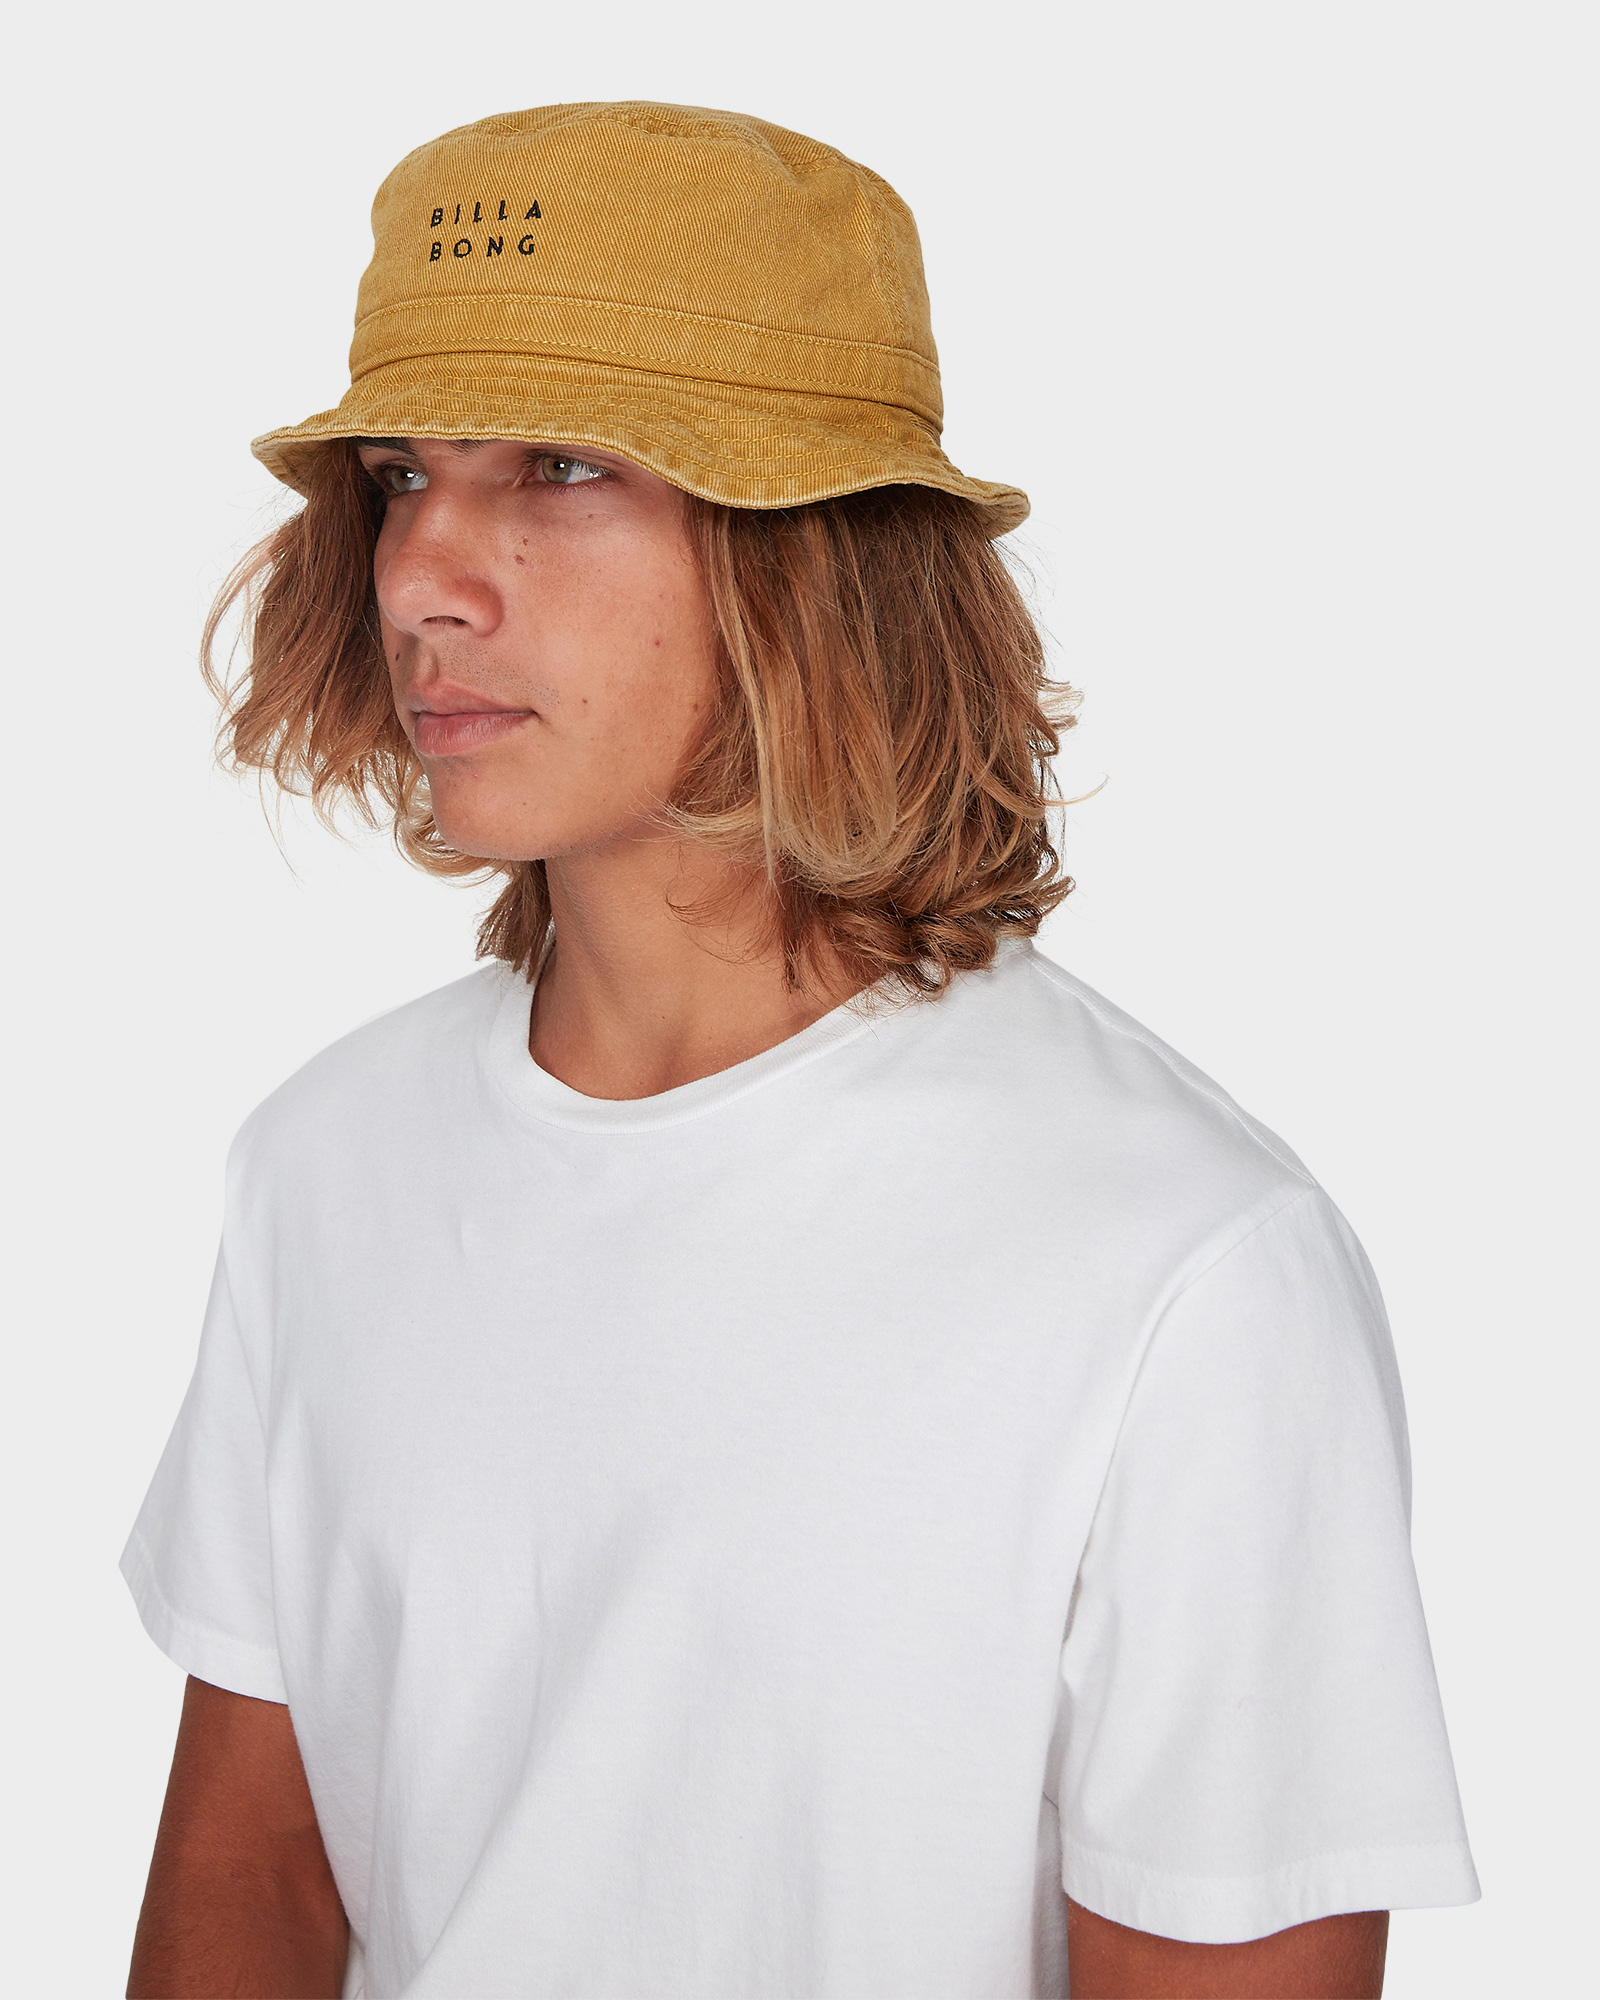 Wave Wash Bucket Hat Accessories Headwear Urban Streetwear Fashion Skater Surf Clothes Online Auckland Nz Billabong Hs19